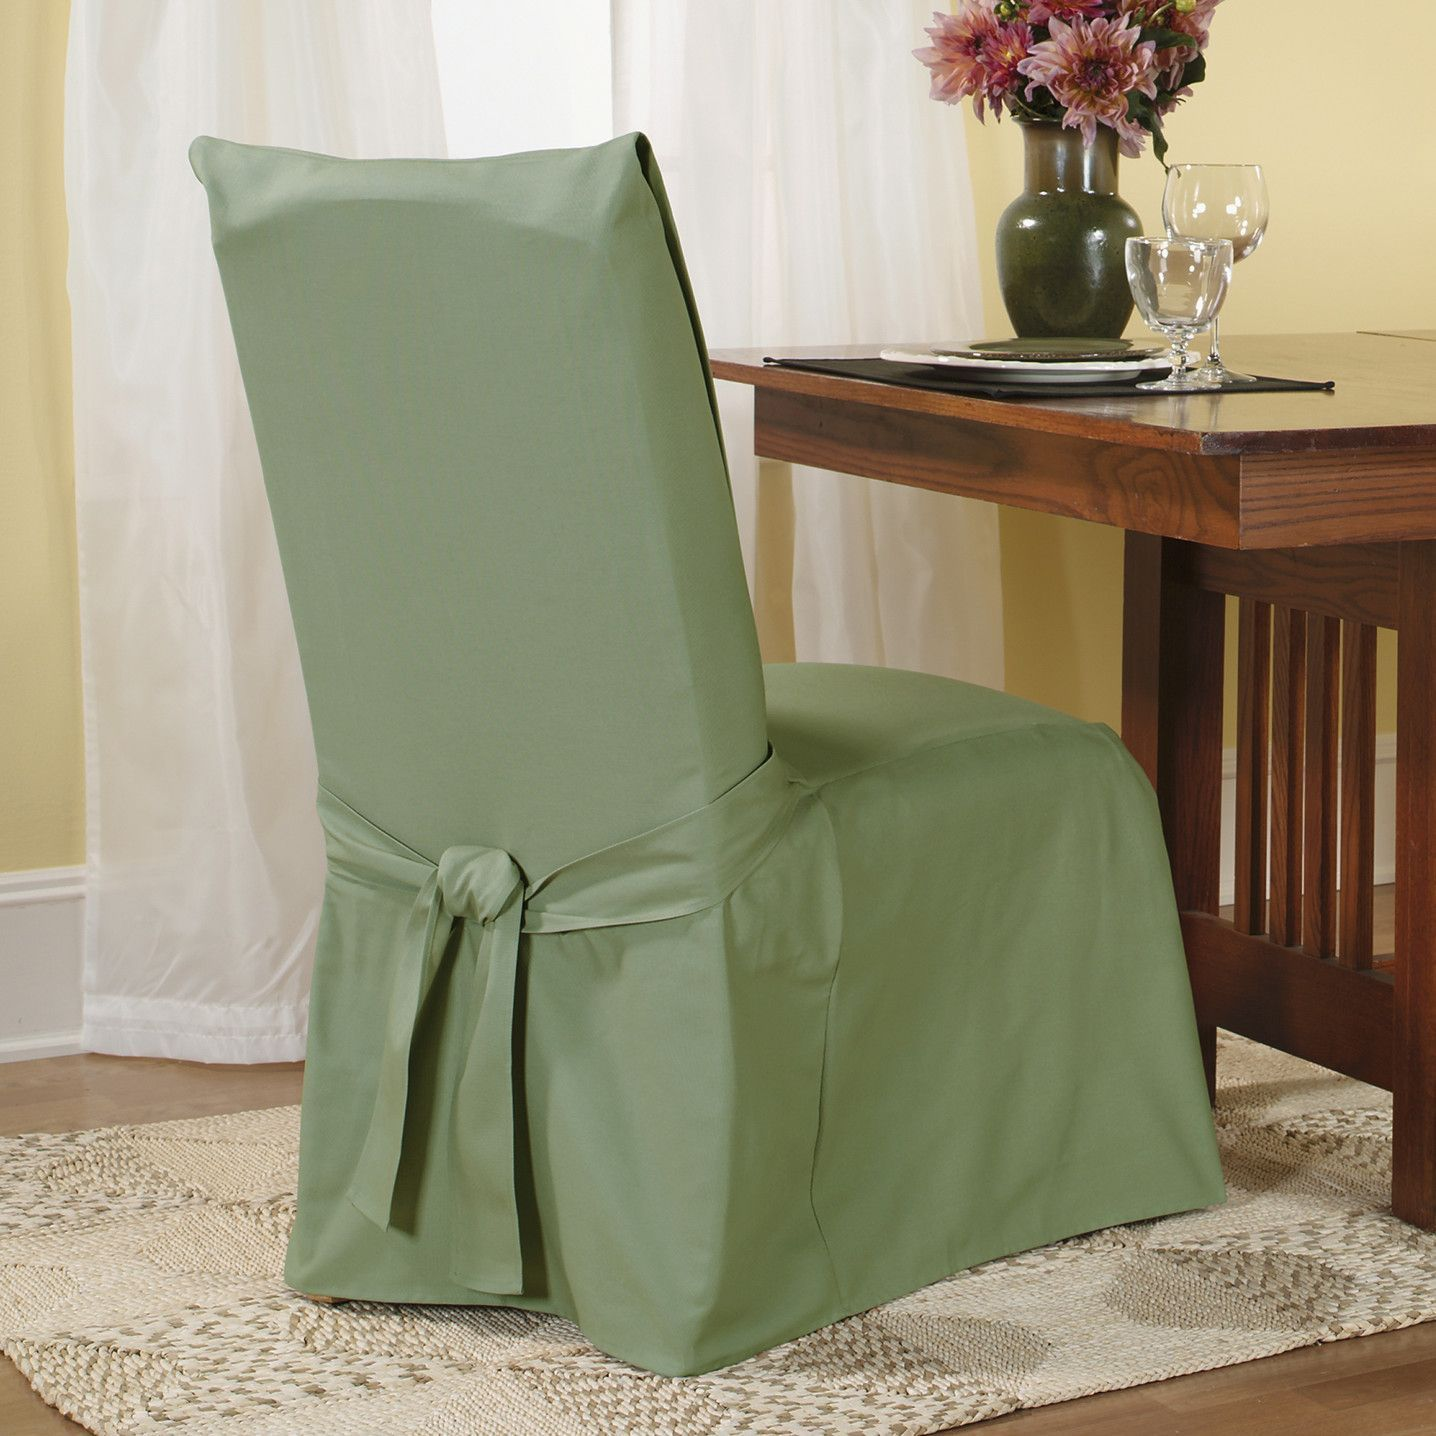 Chair Covers For Dining Room Classic Sure Fit Cotton Slipcover Set Of 4